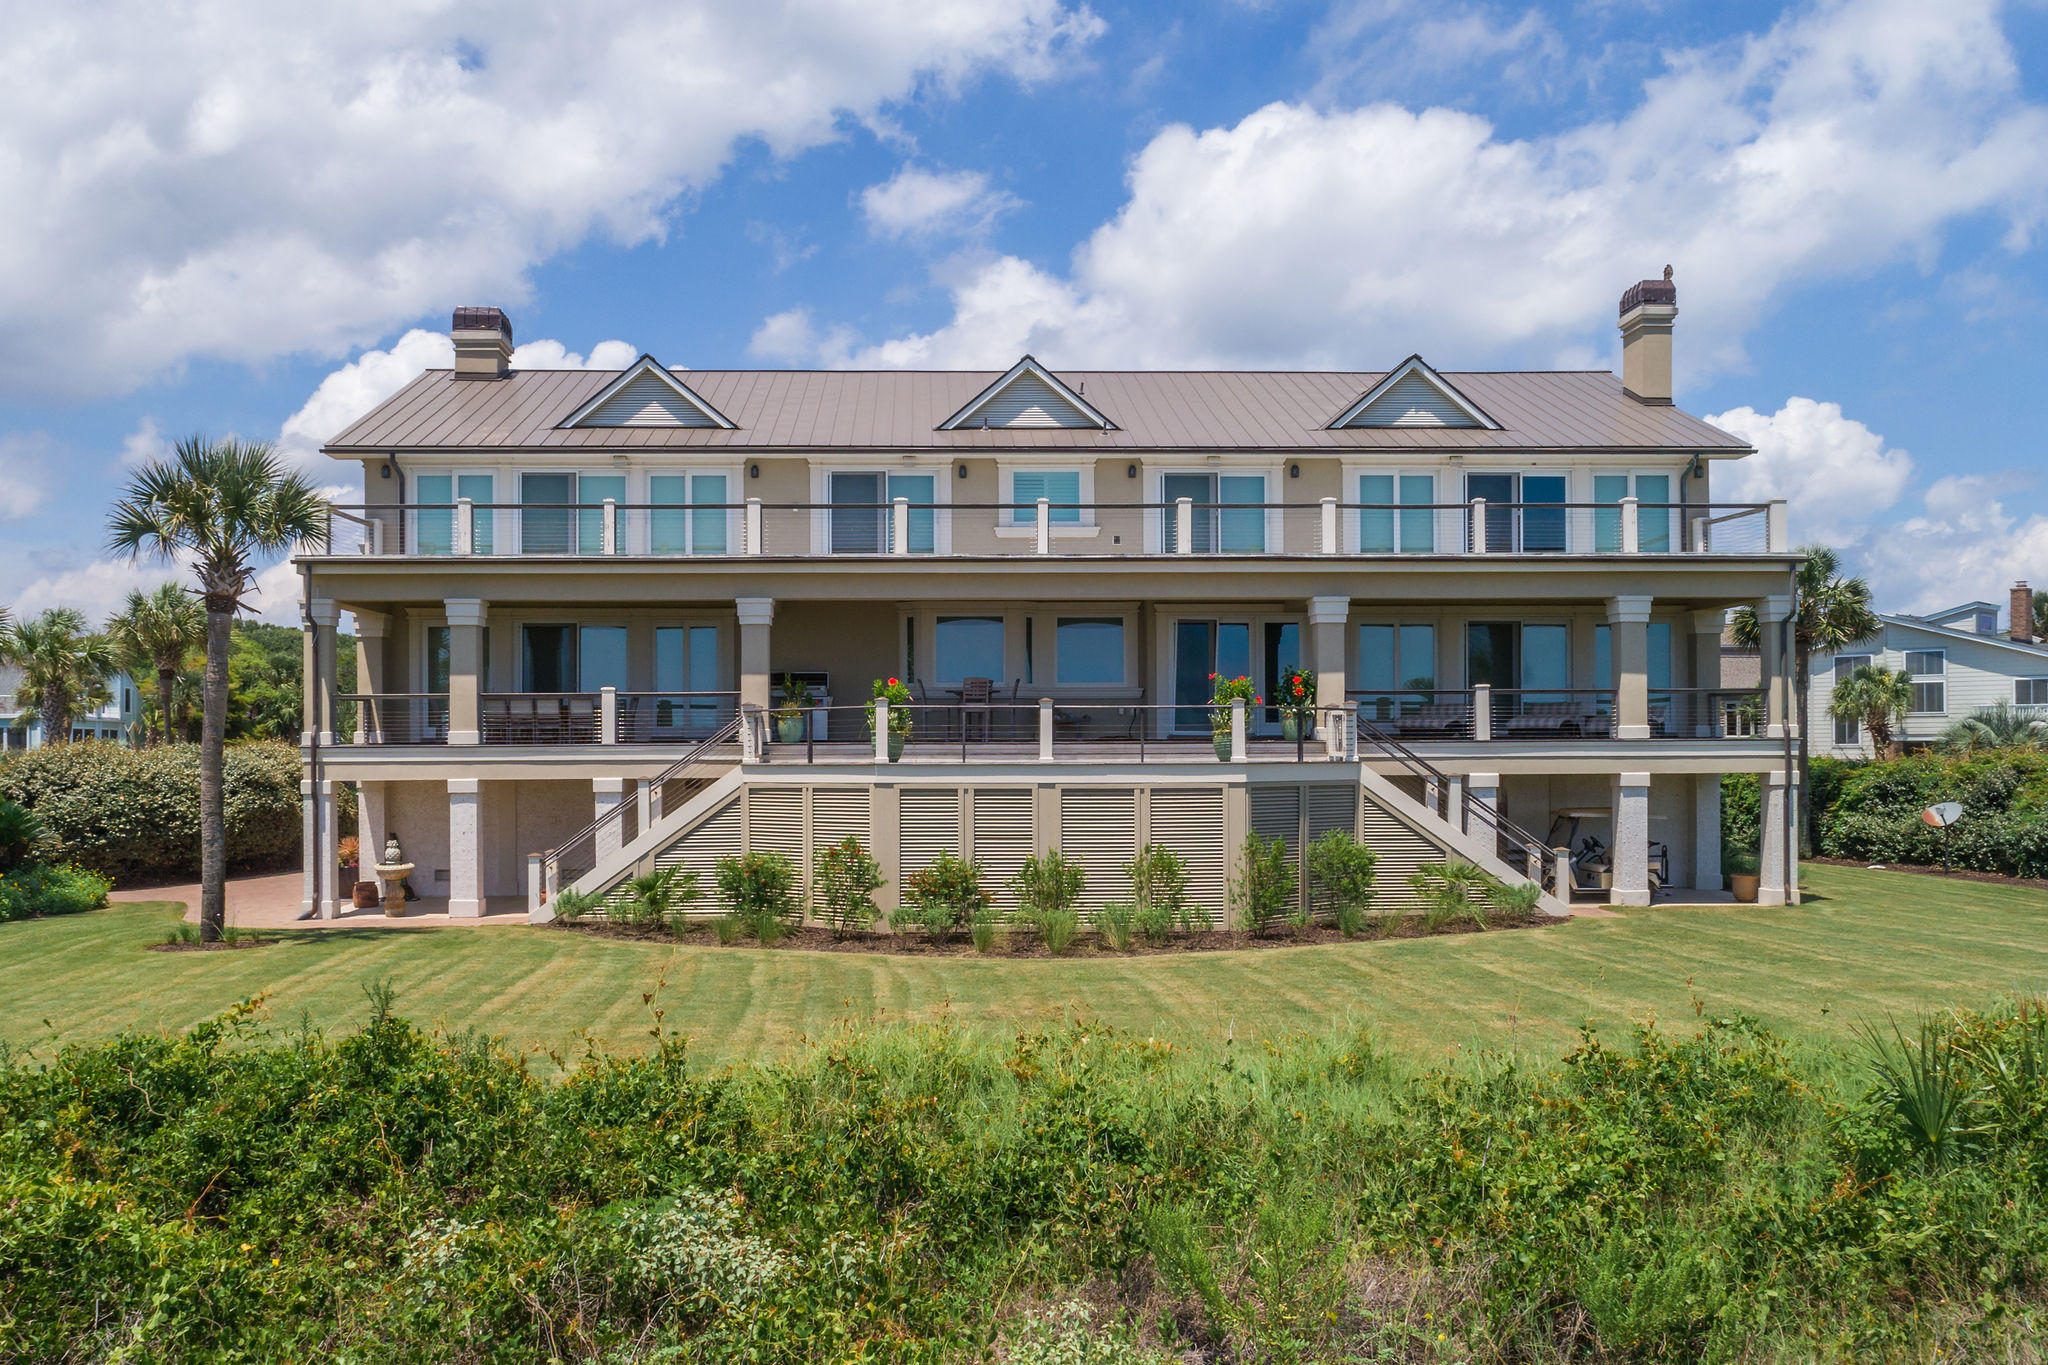 Isle of Palms Homes For Sale - 2 50th, Isle of Palms, SC - 23